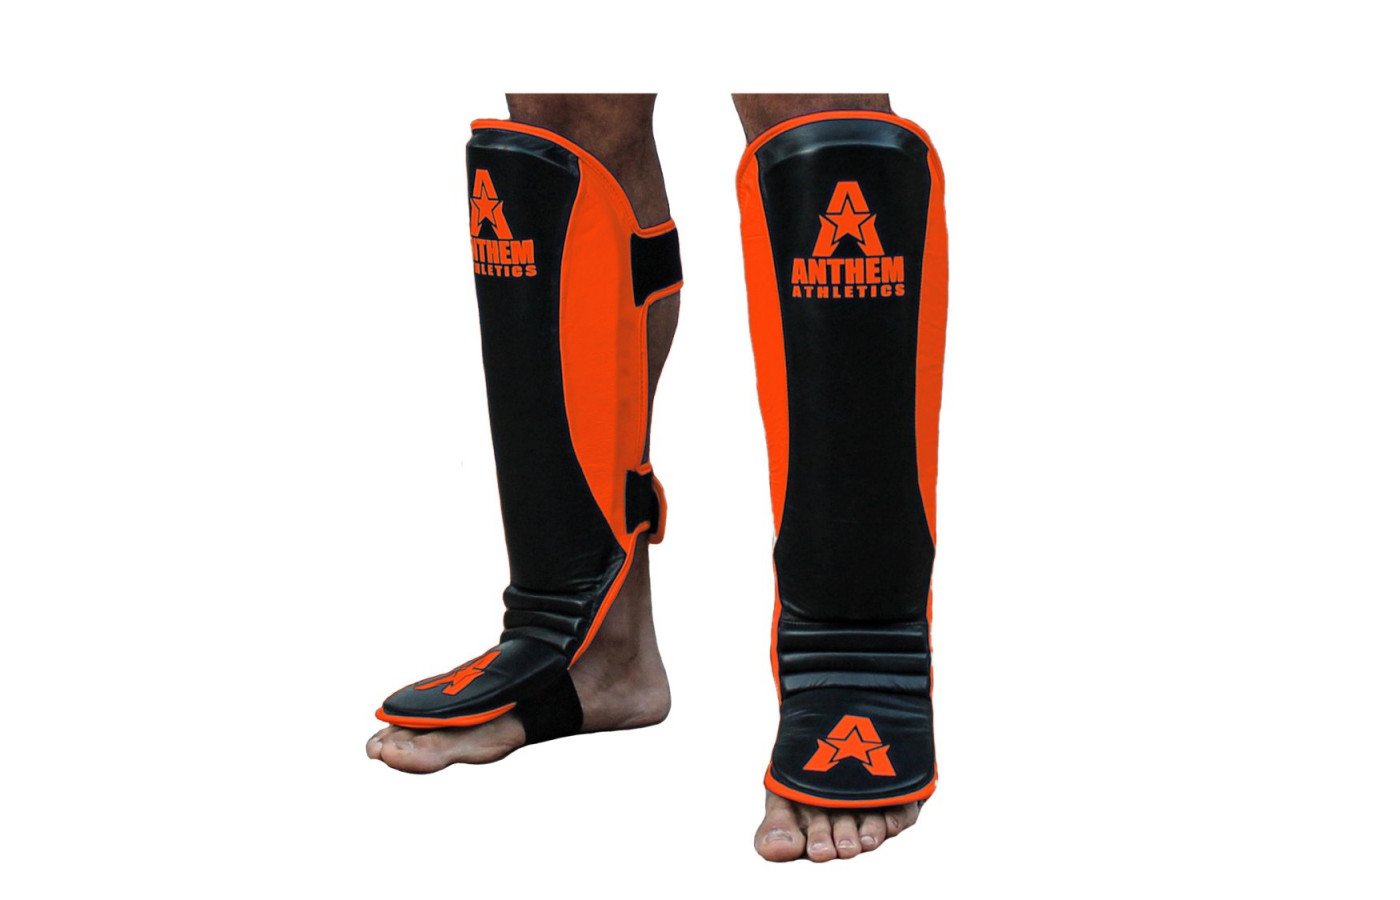 anthem athletics fortitude shin guard black and orange